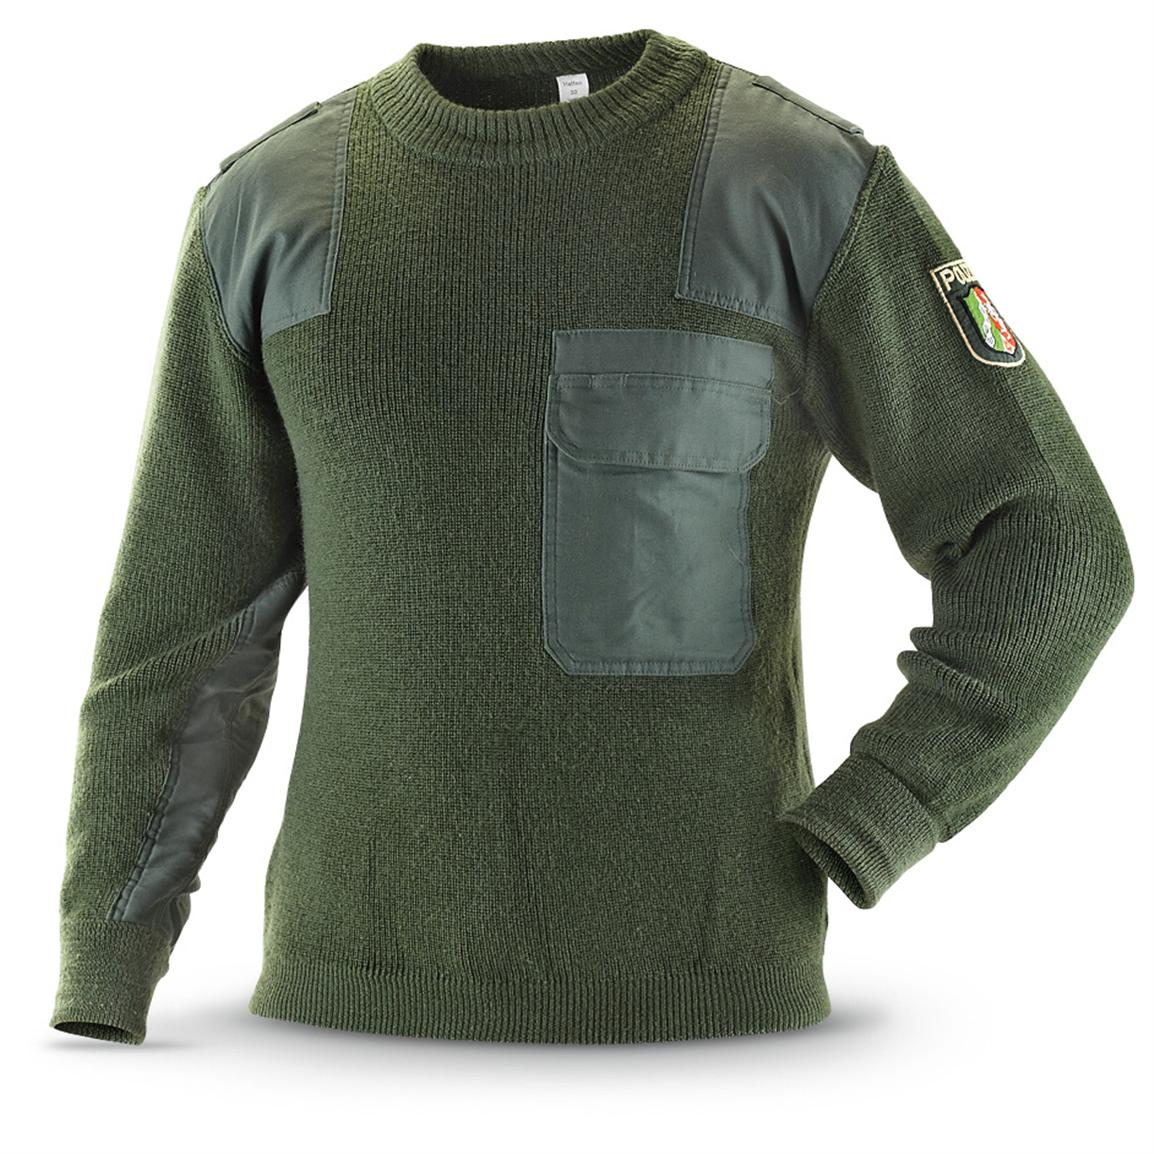 Specsignal German Police Commando Sweater New, Size: Smal...